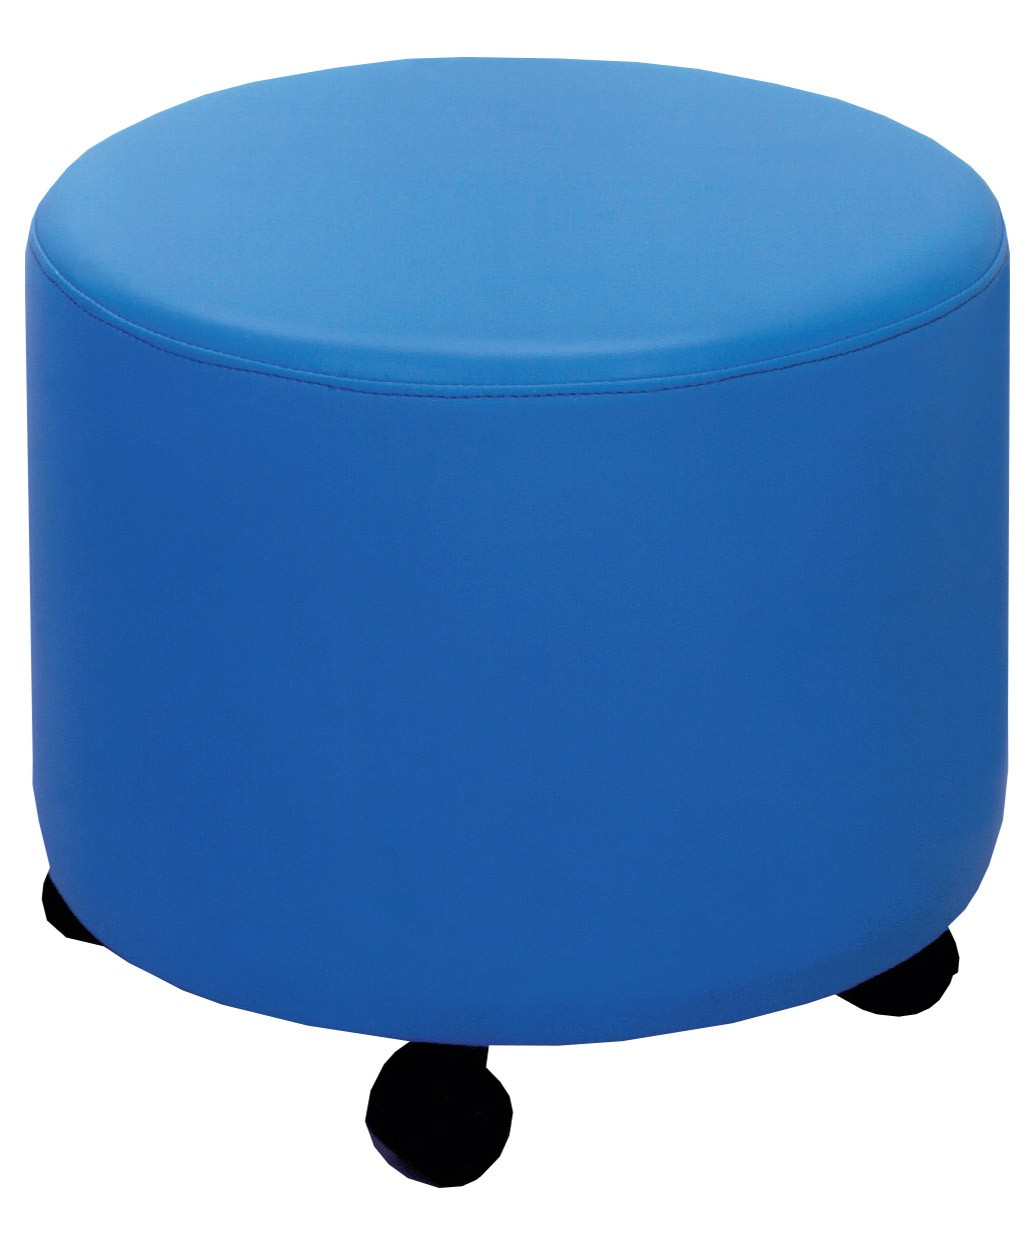 Pibbs 982 Ottoman Pedicure Stool In 35 Colors Free Shipping